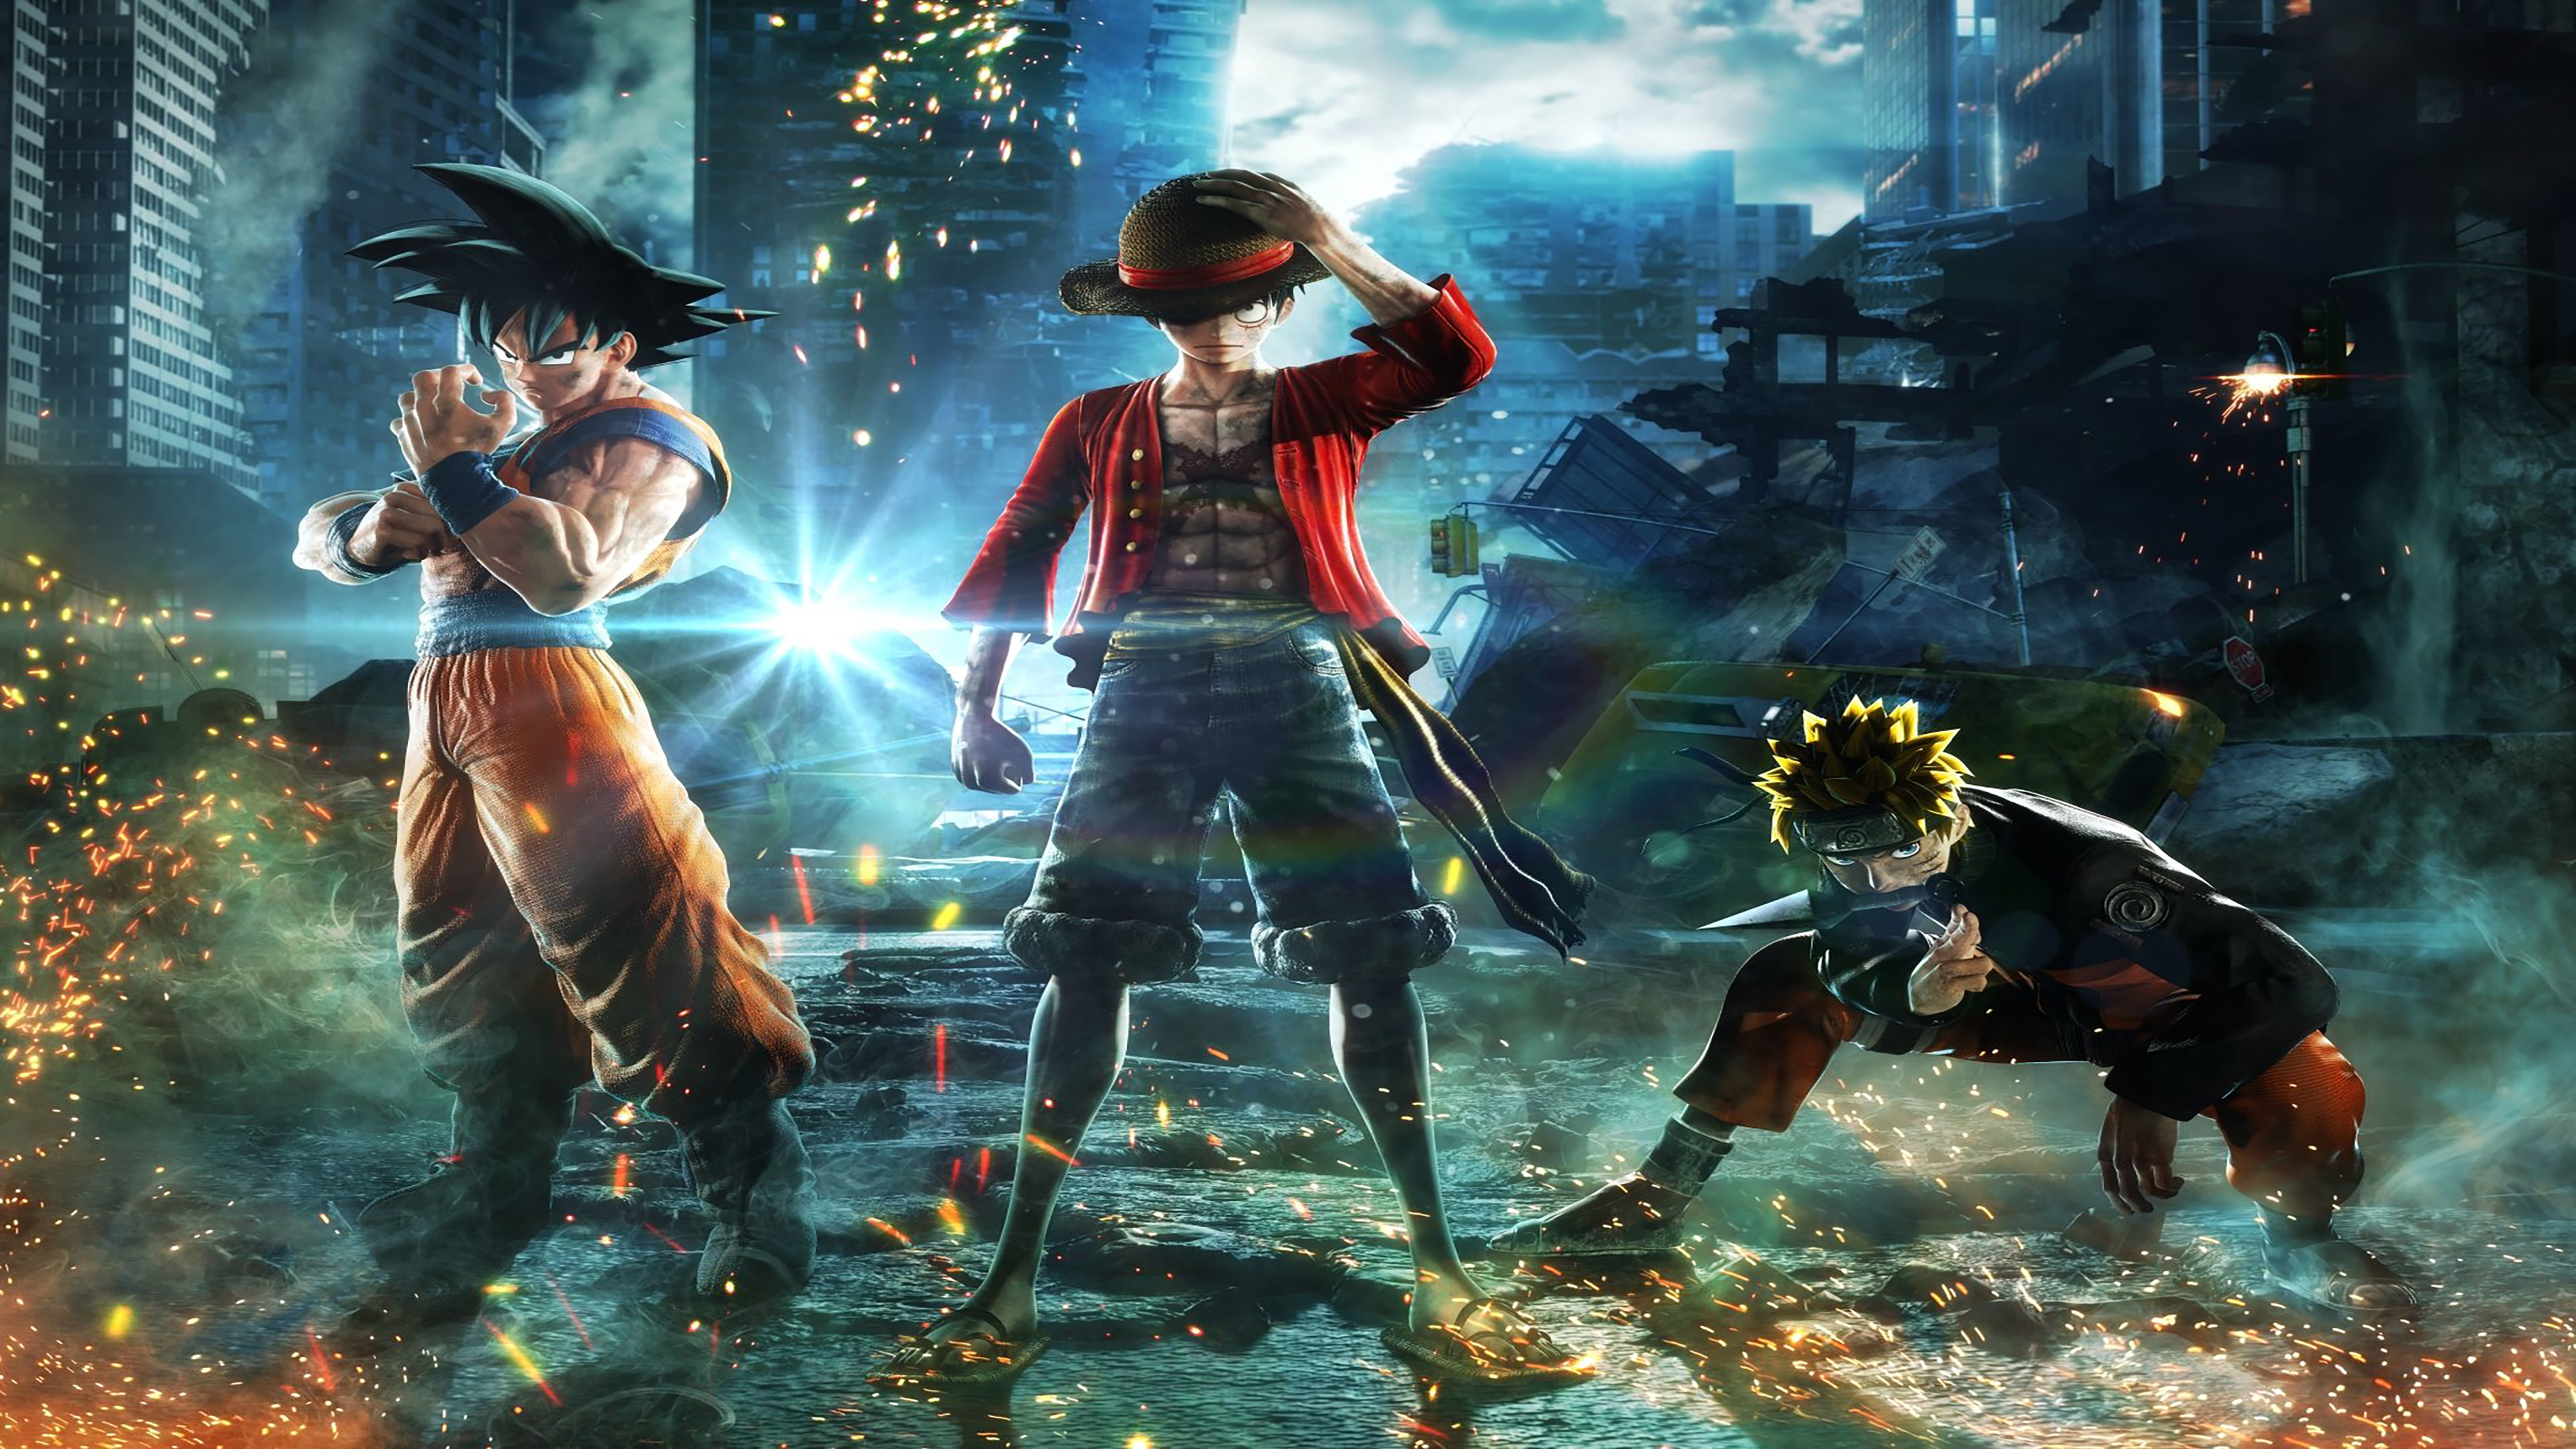 Hd Gaming Wallpapers 4k Hd Wallpapers Hd Gaming: Jump Force Wallpapers In Ultra HD